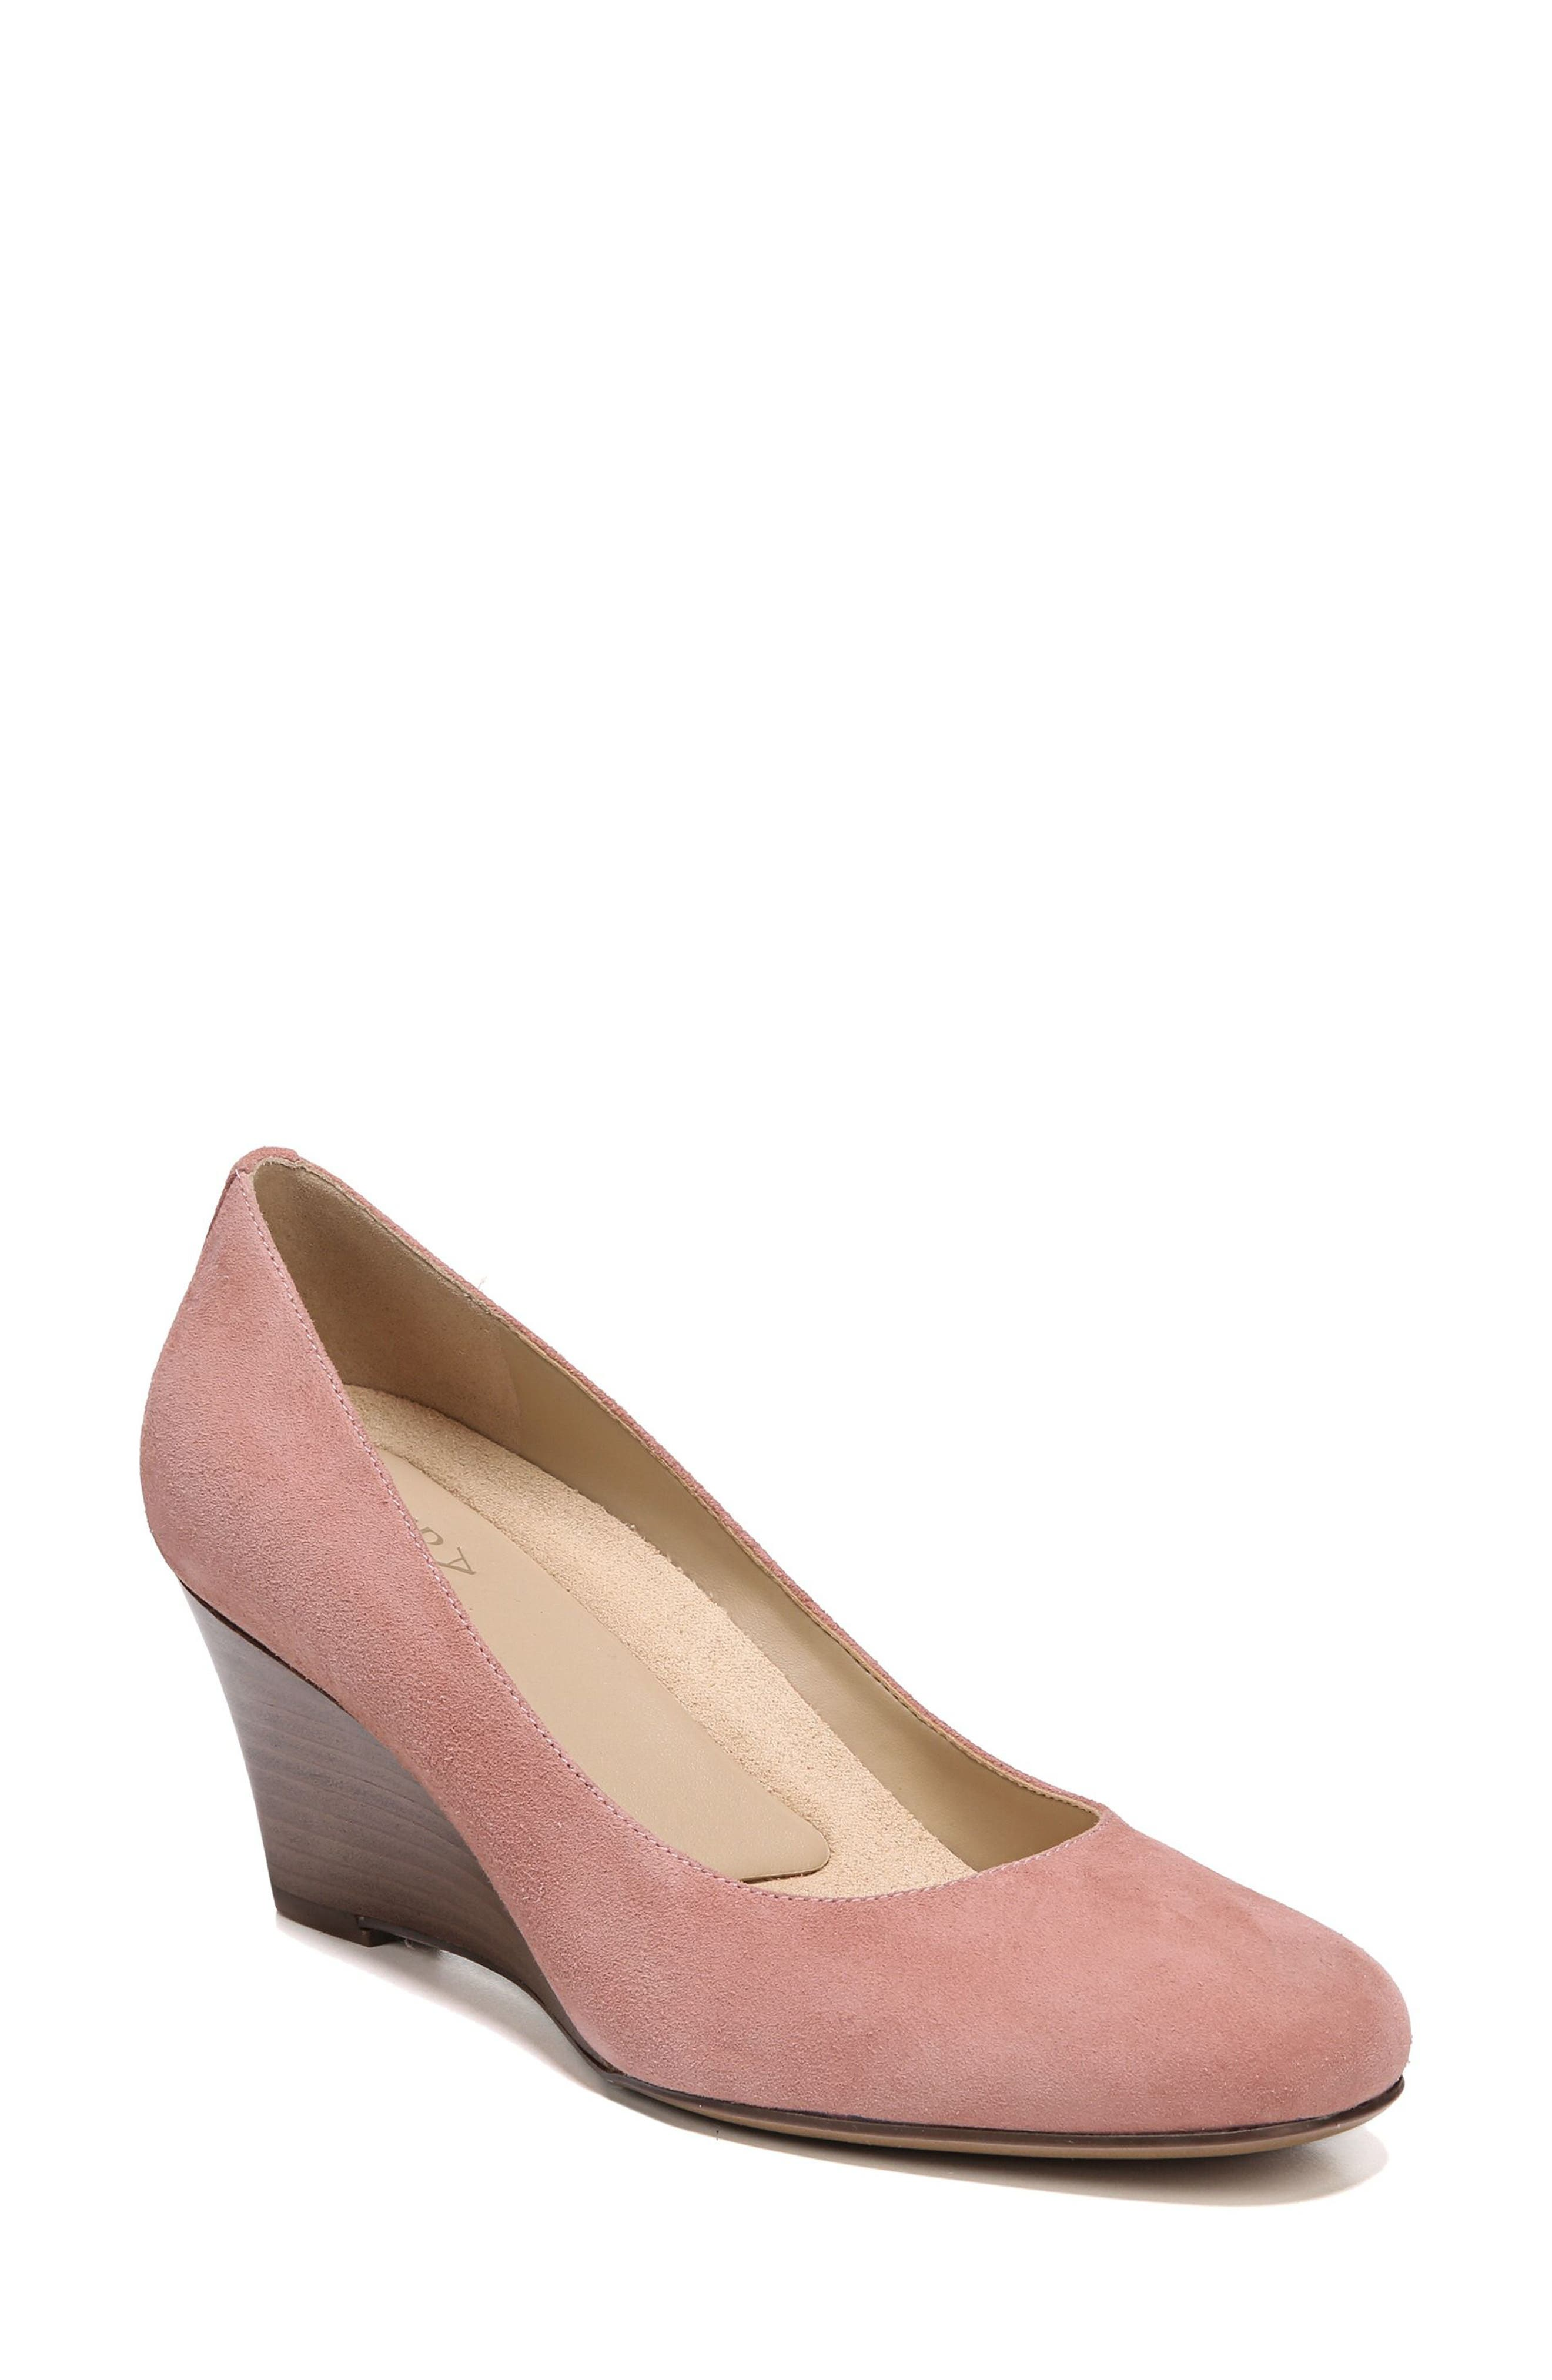 Emily Wedge Pump,                         Main,                         color, Peony Pink Suede